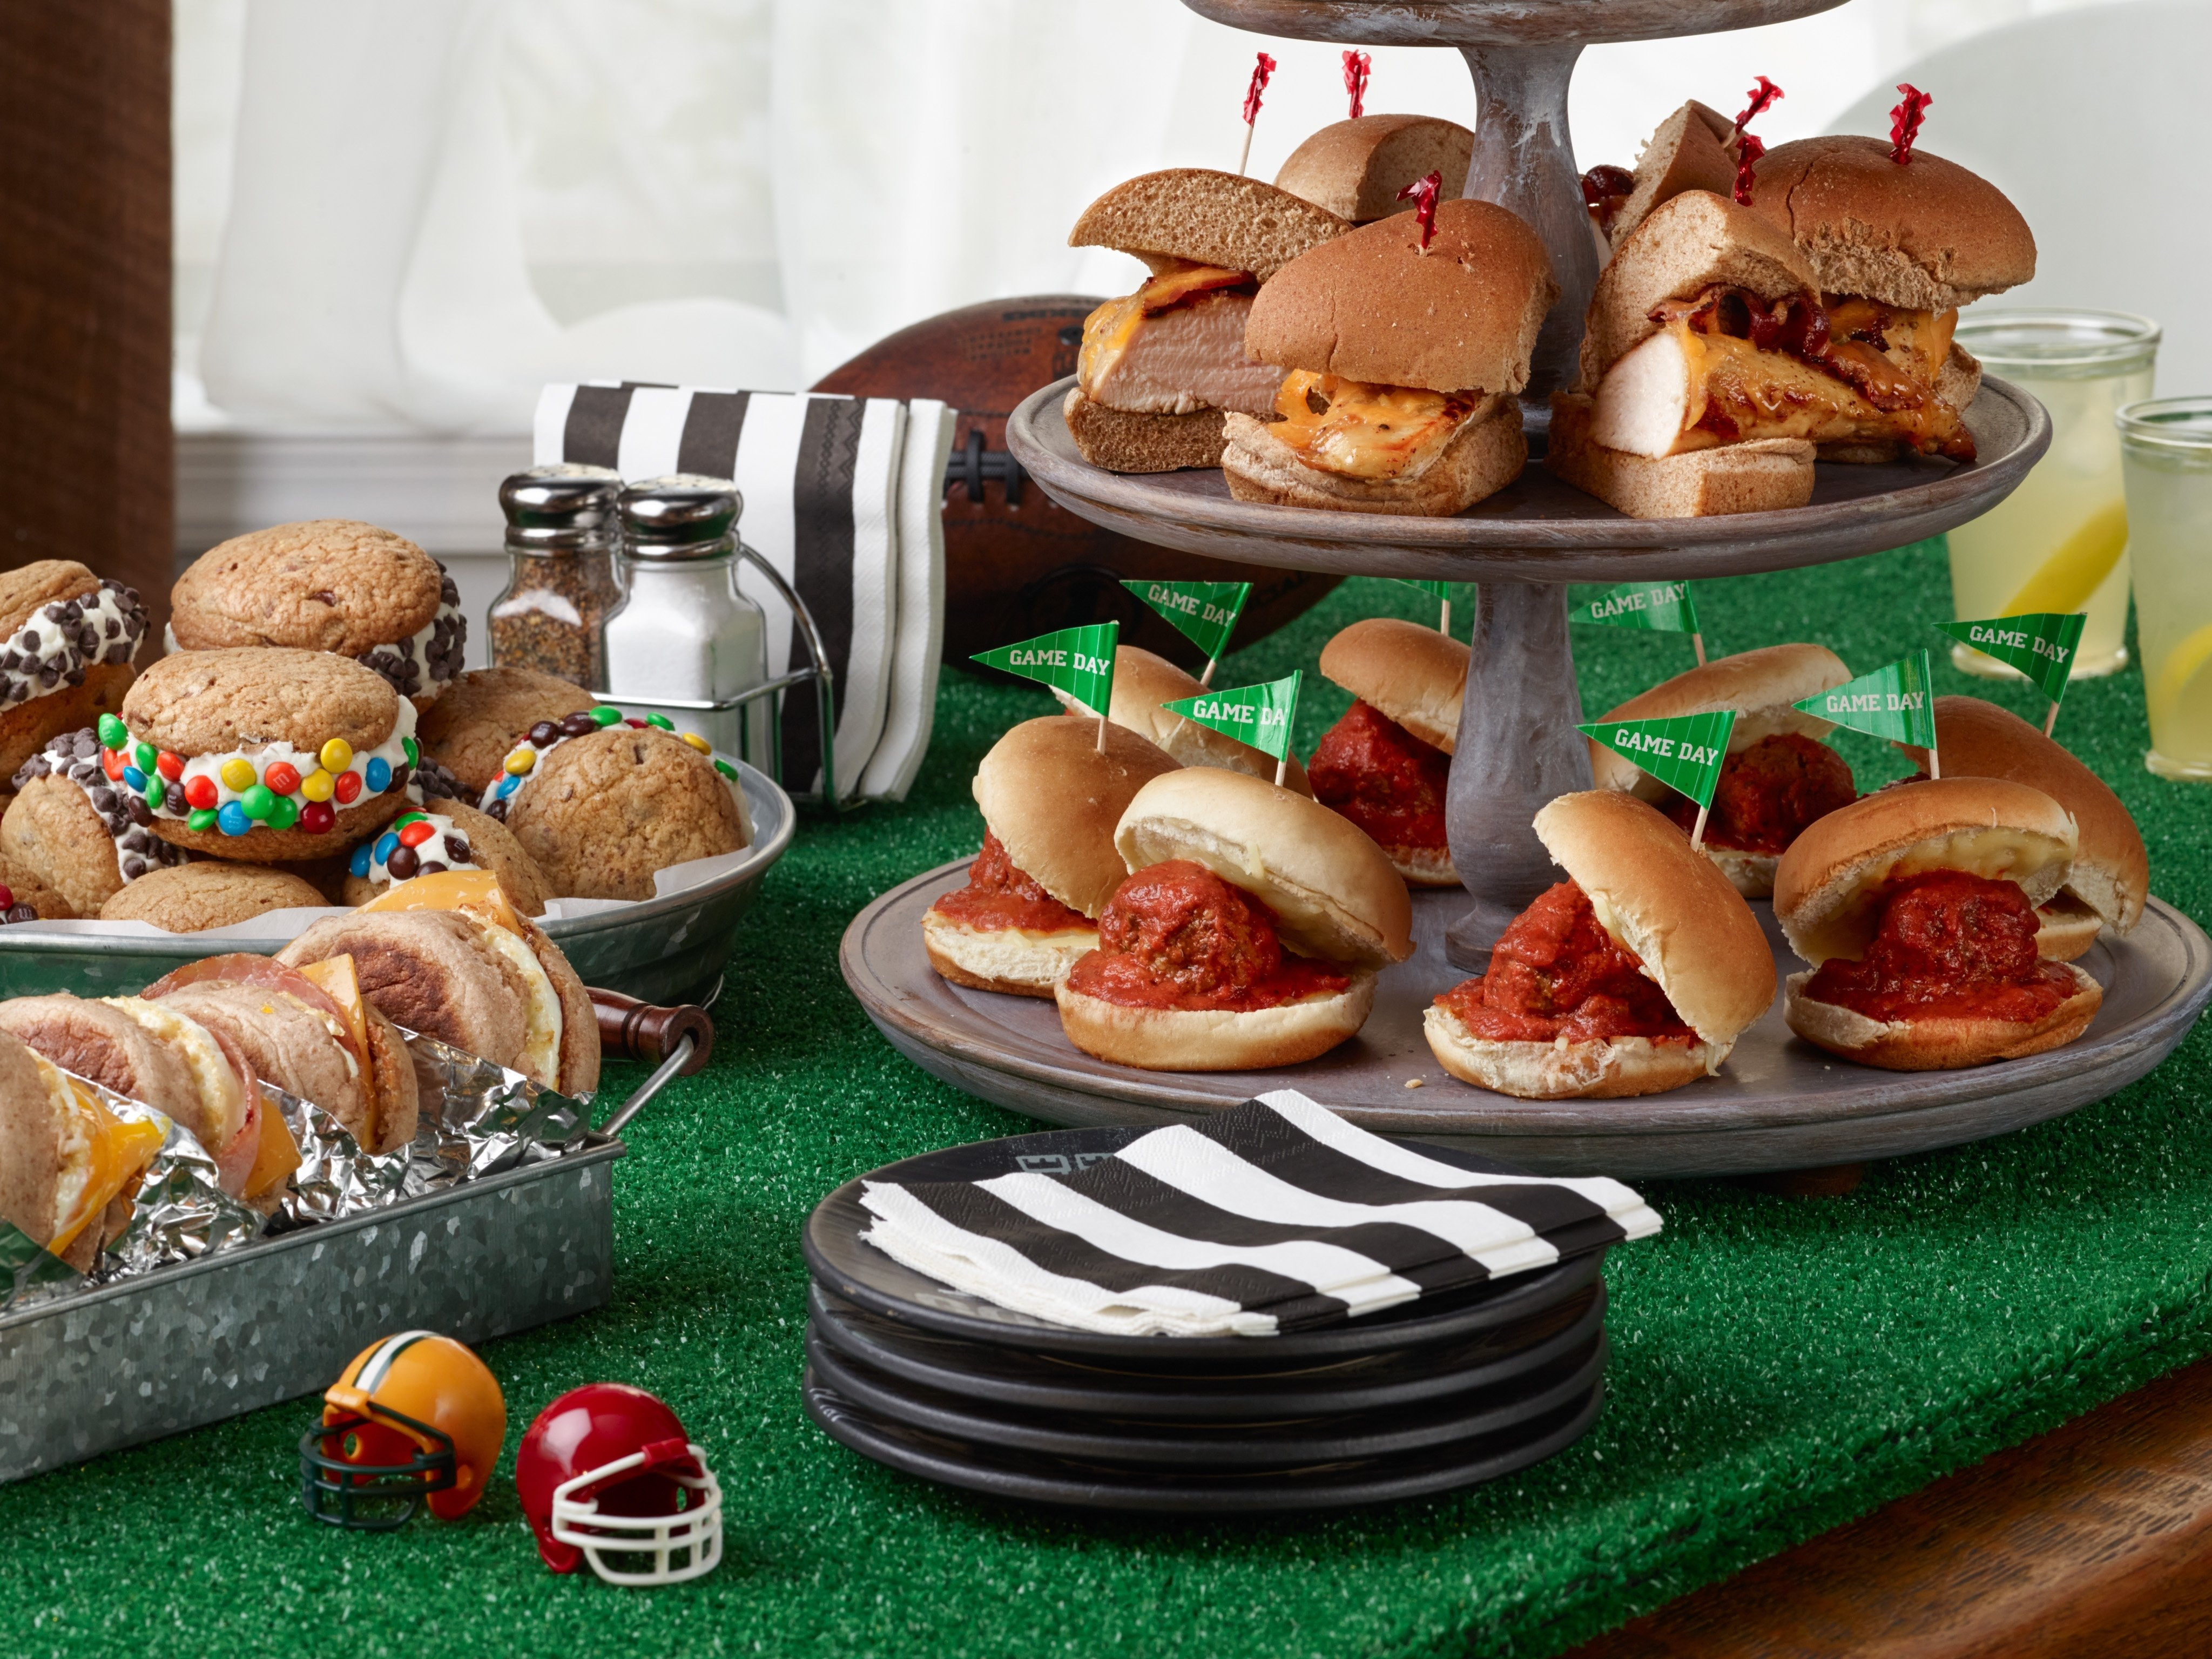 10 Stunning Super Bowl Party Menu Ideas ree drummonds football sandwich party at the ranch food network 2021